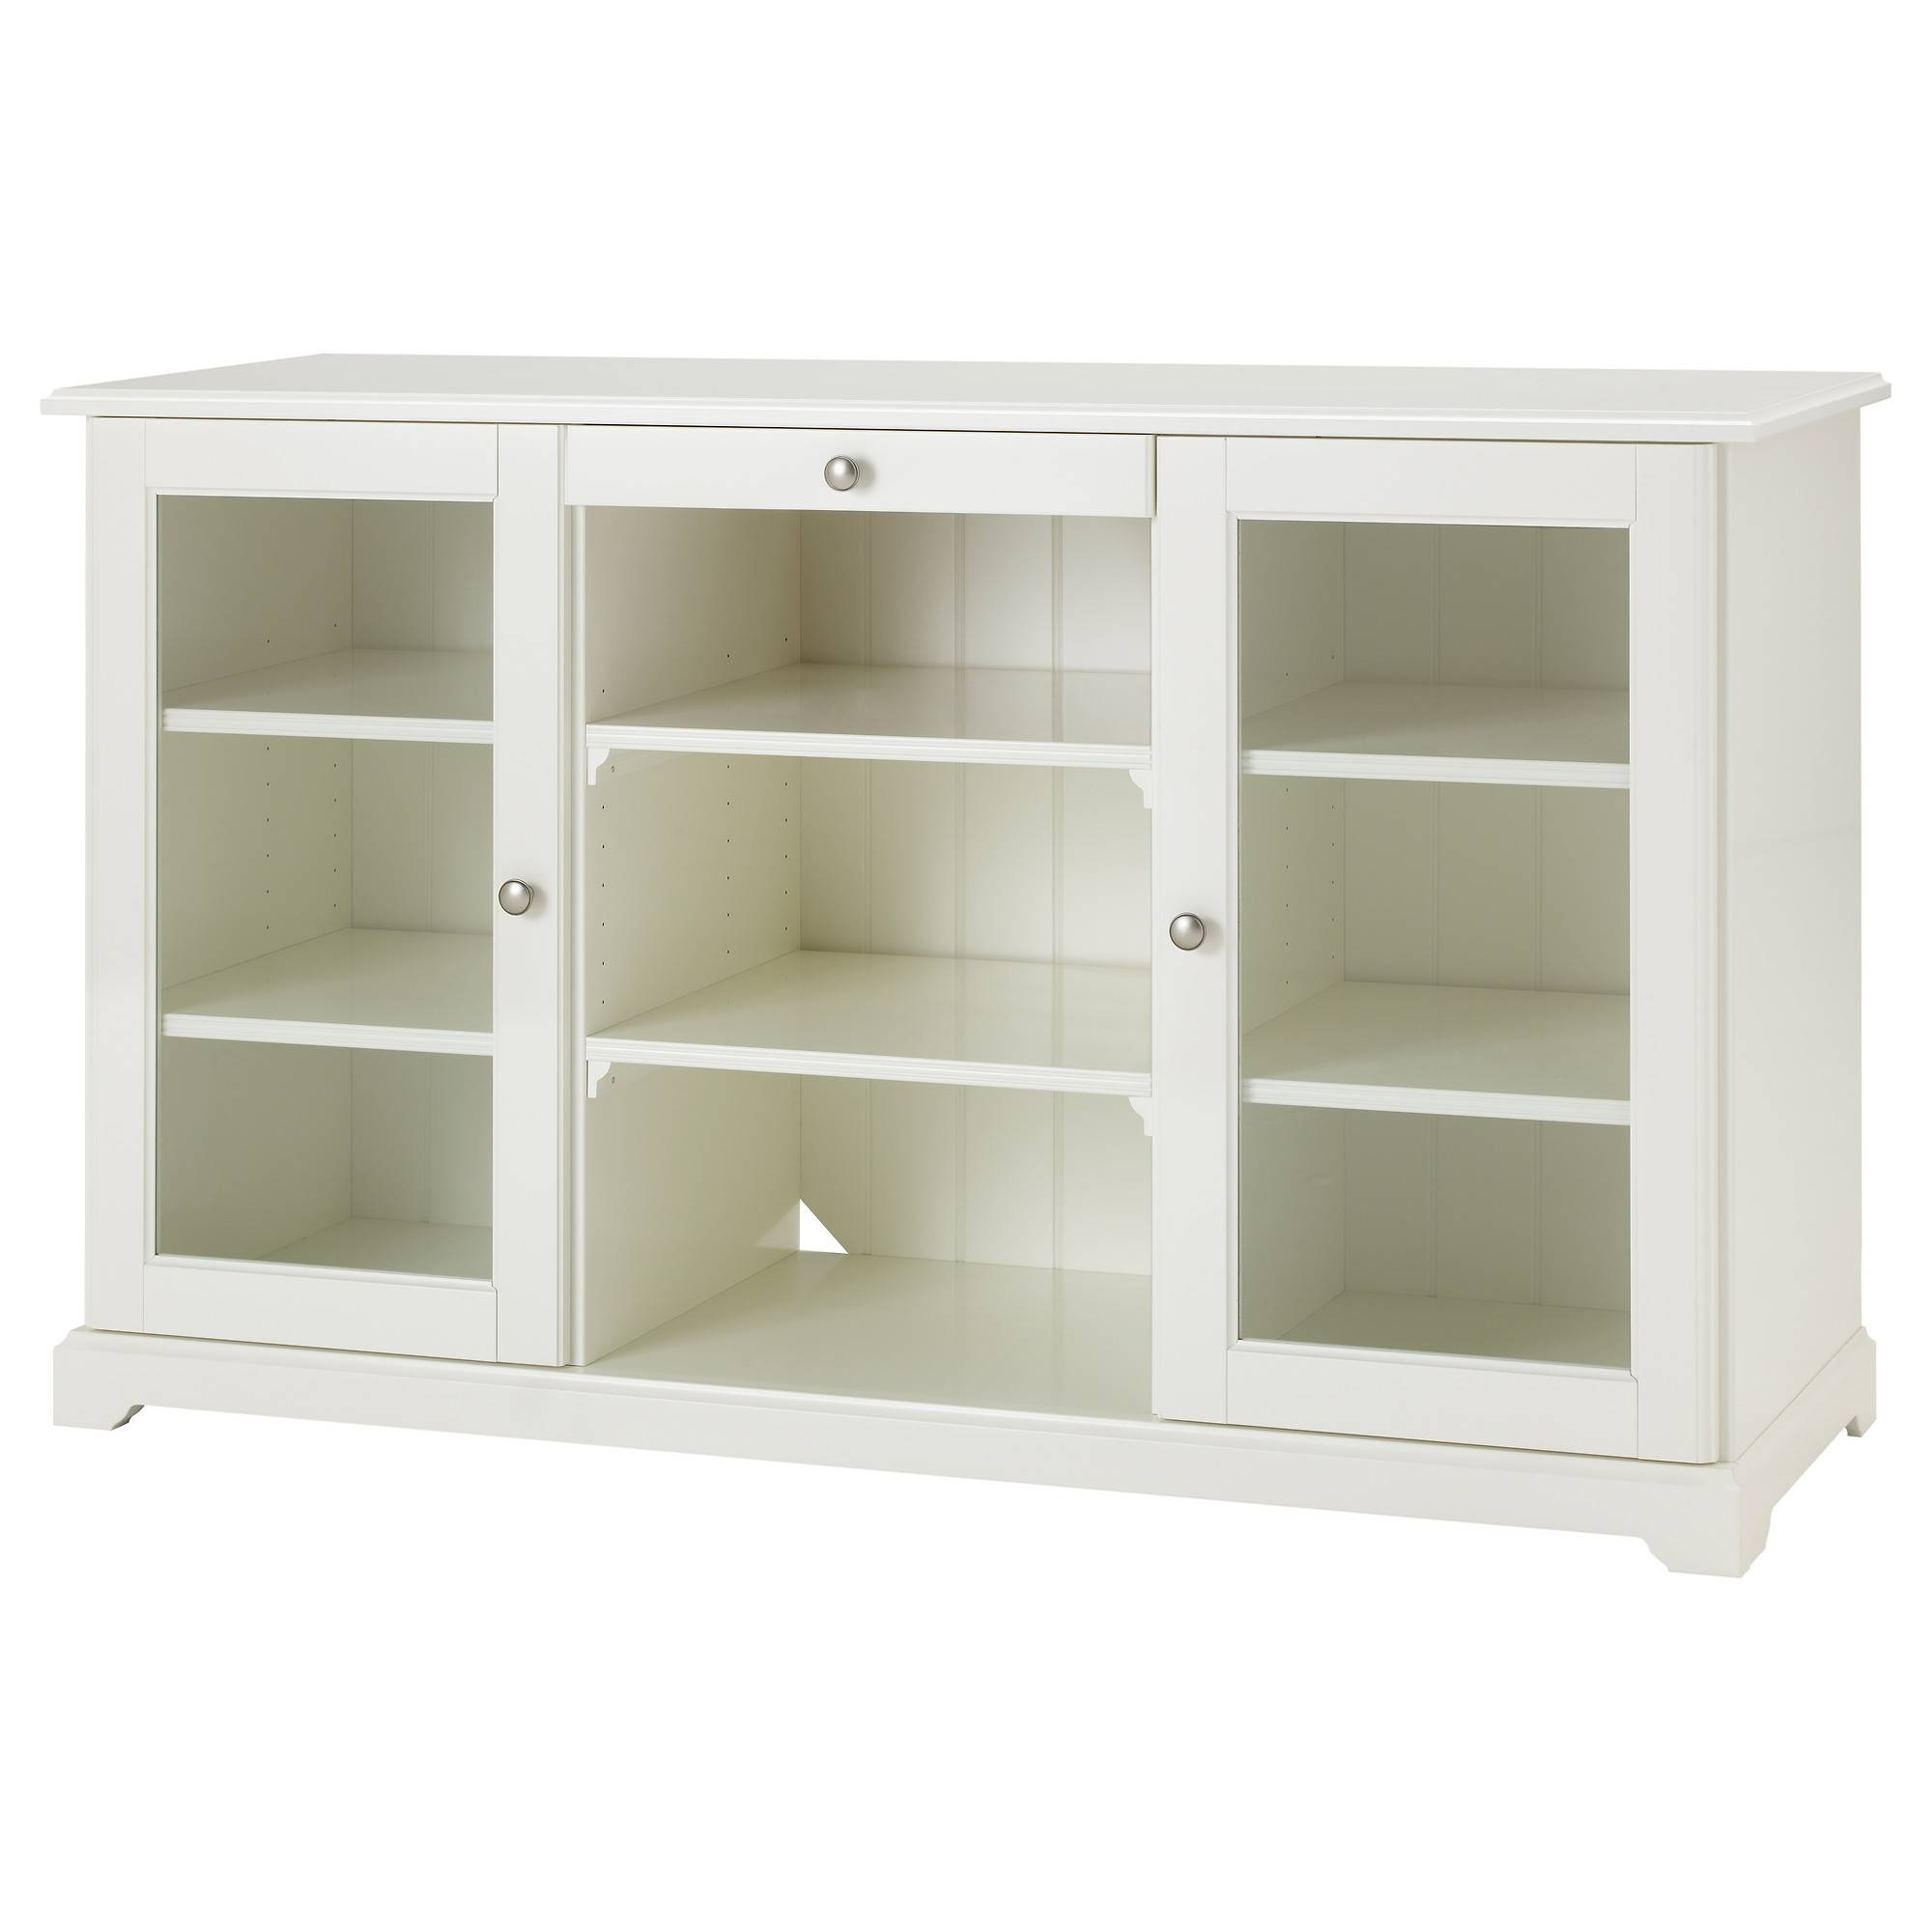 Liatorp Sideboard - White - Ikea within White Sideboards With Glass Doors (Image 8 of 15)